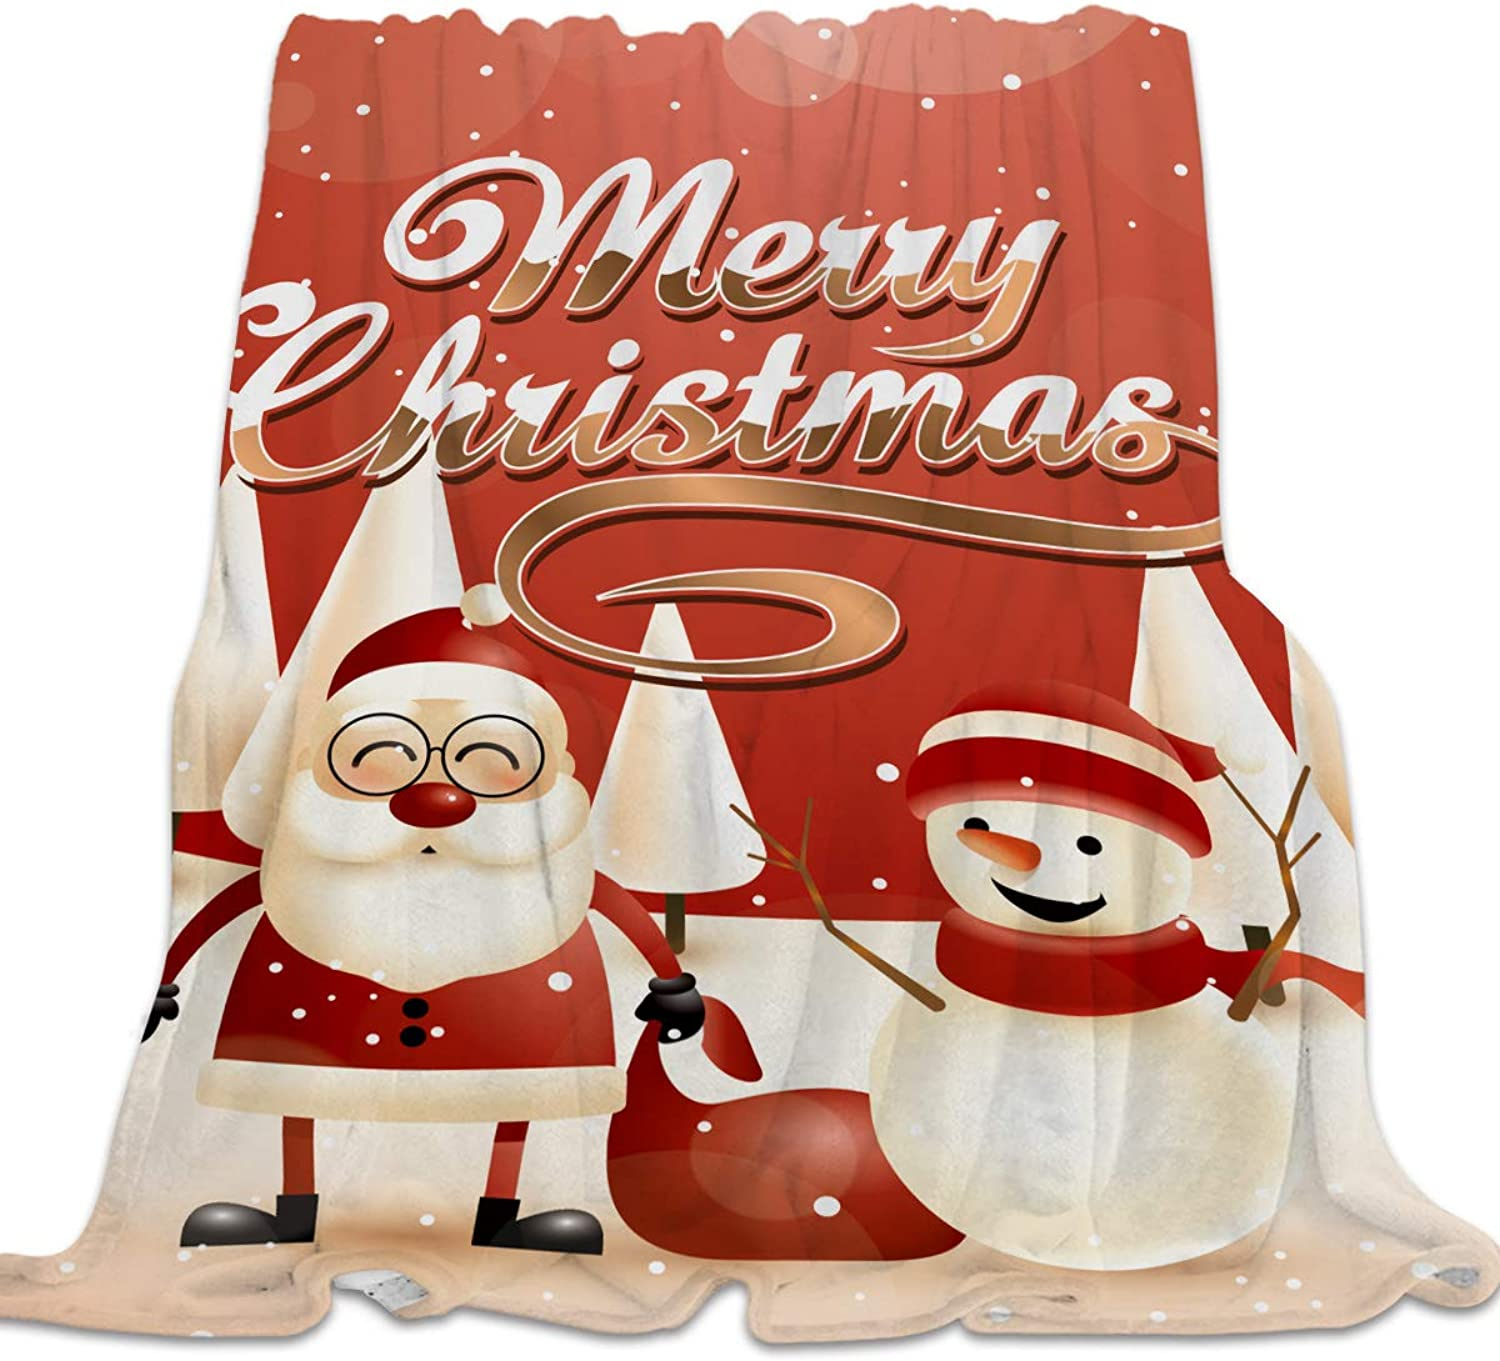 YEHO Art Gallery Flannel Fleece Bed Blanket Super Soft Cozy ThrowBlankets for Kids Girls Boys,Lightweight Blankets for Bed Sofa Couch Chair Day Nap,Santa Claus Snowman Merry Christmas Tree,49x59inch